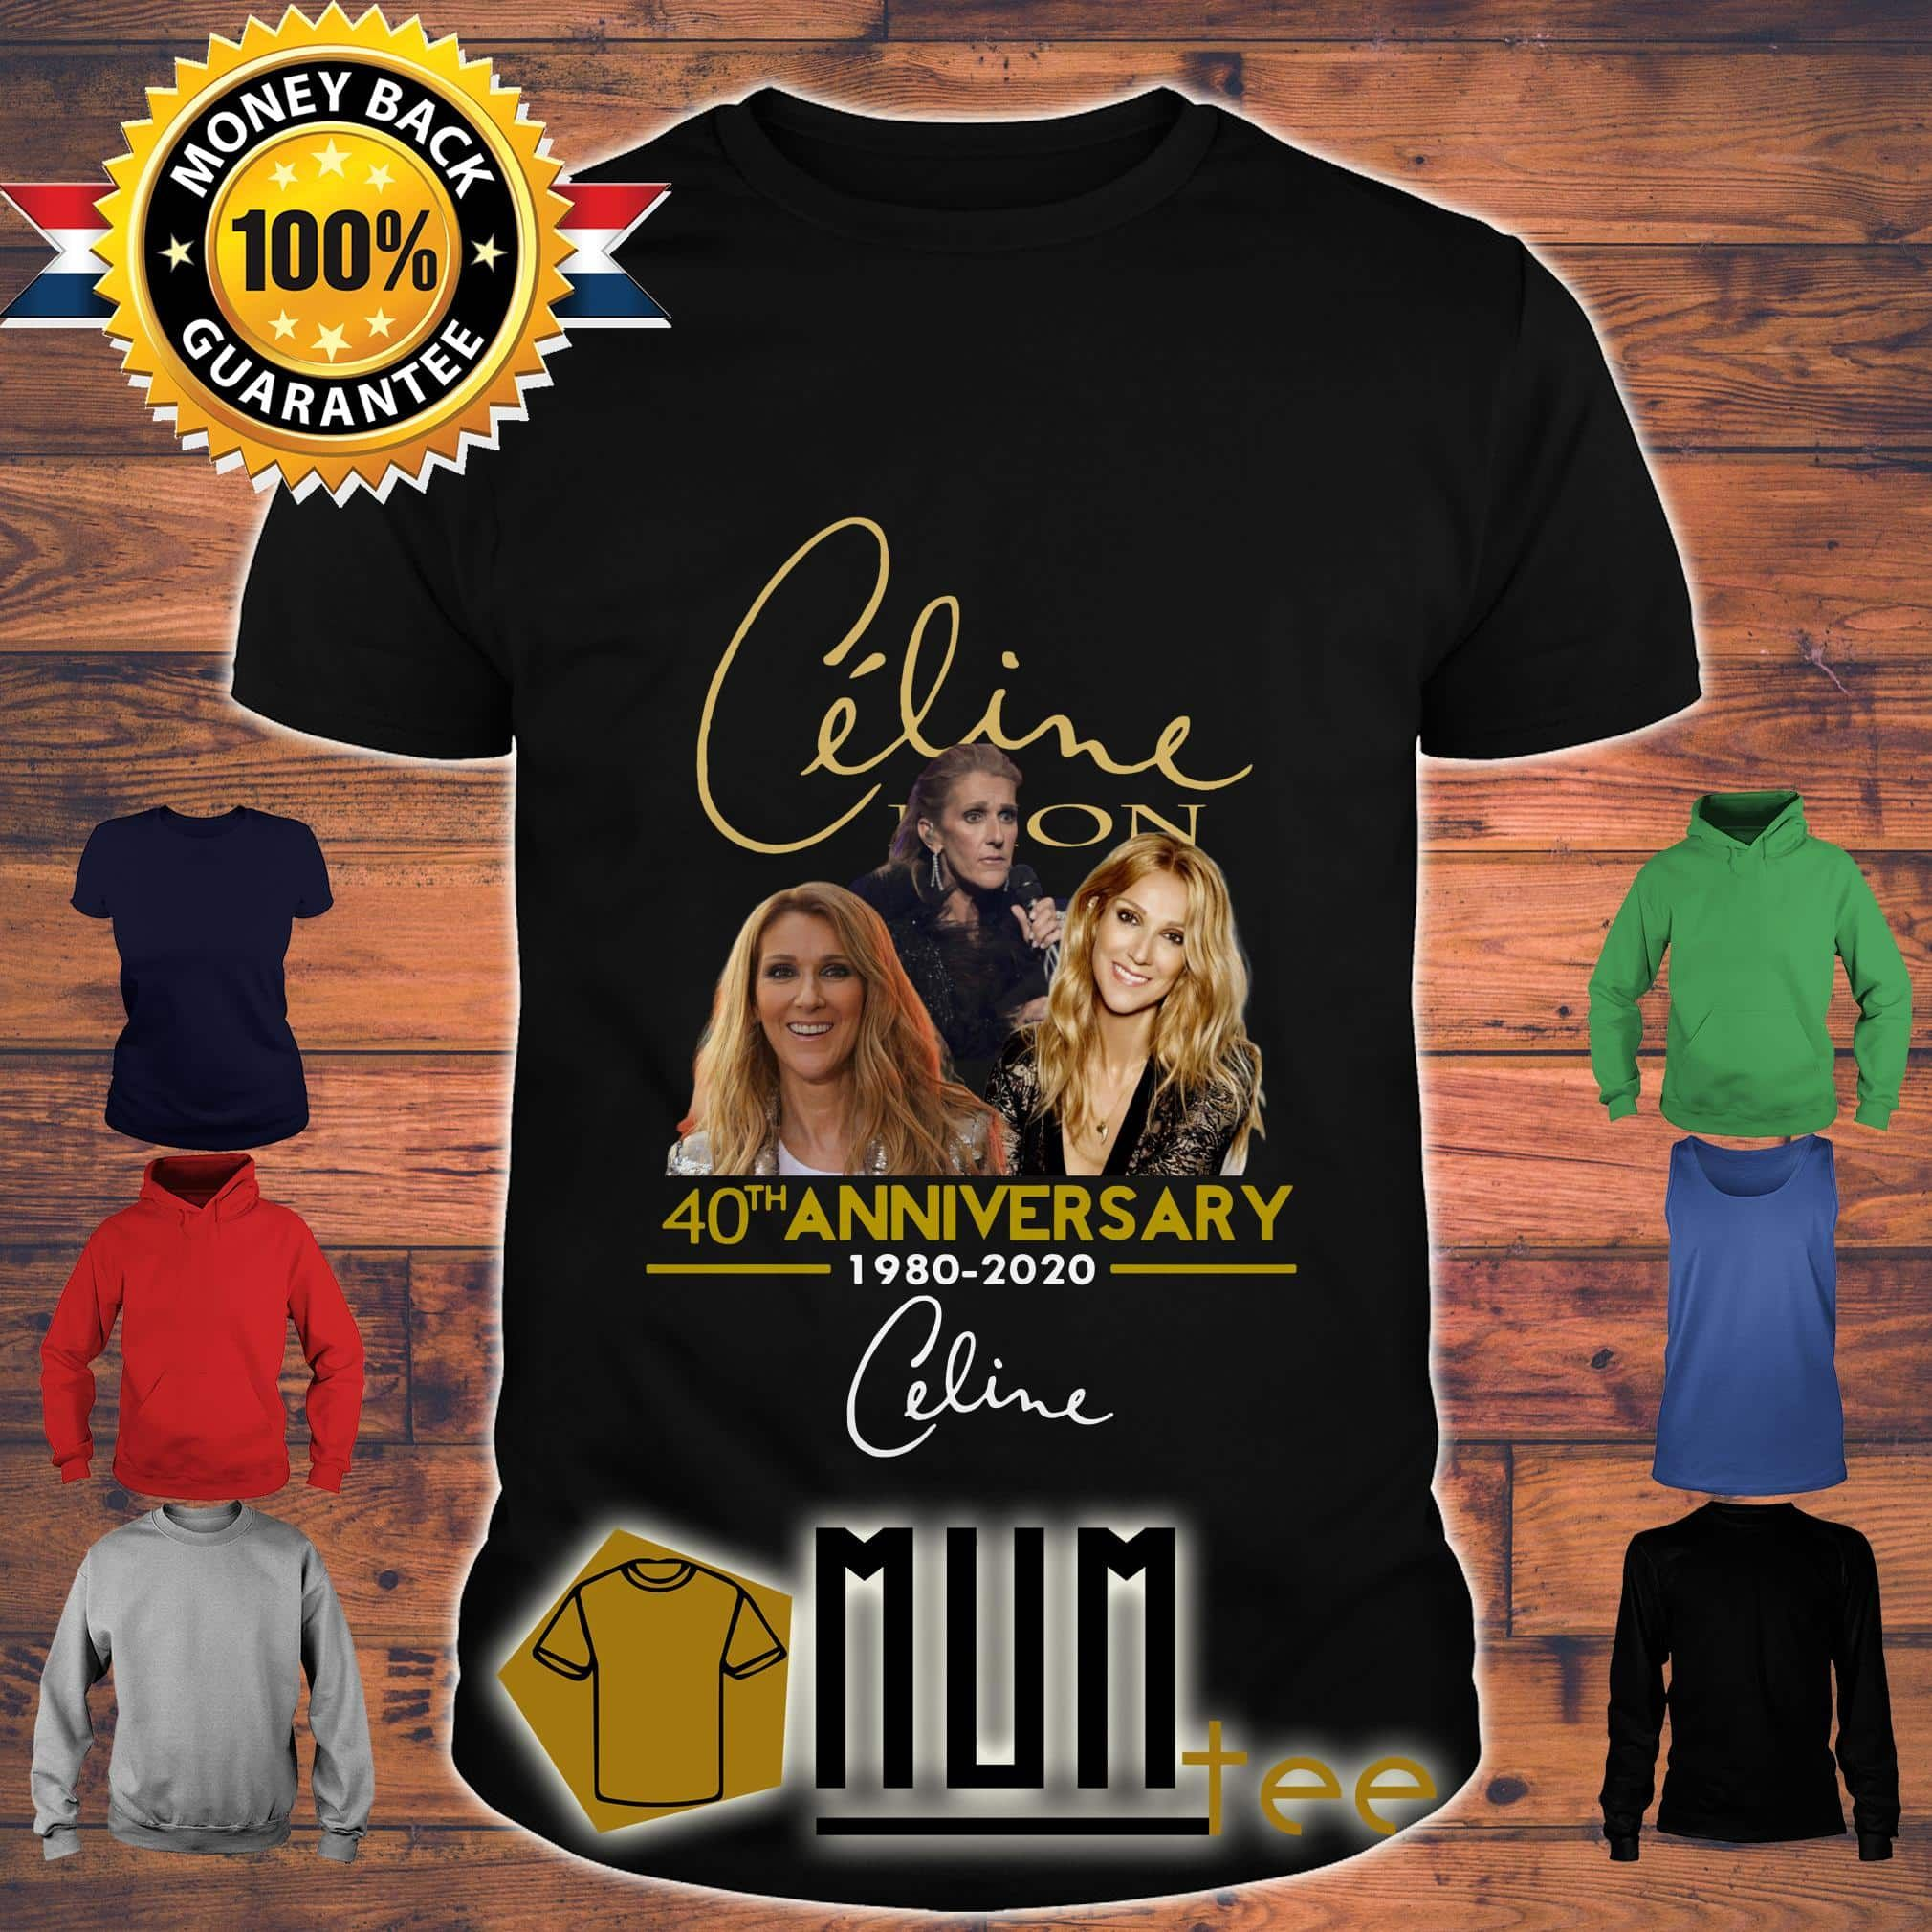 Fast Shipping Celine Dion 40th Anniversary 1980 2020 Shirt Tank Top V Neck Sweater And Hoodie Mumtee Friends Shirt Vintage Shirts Halloween Shirt